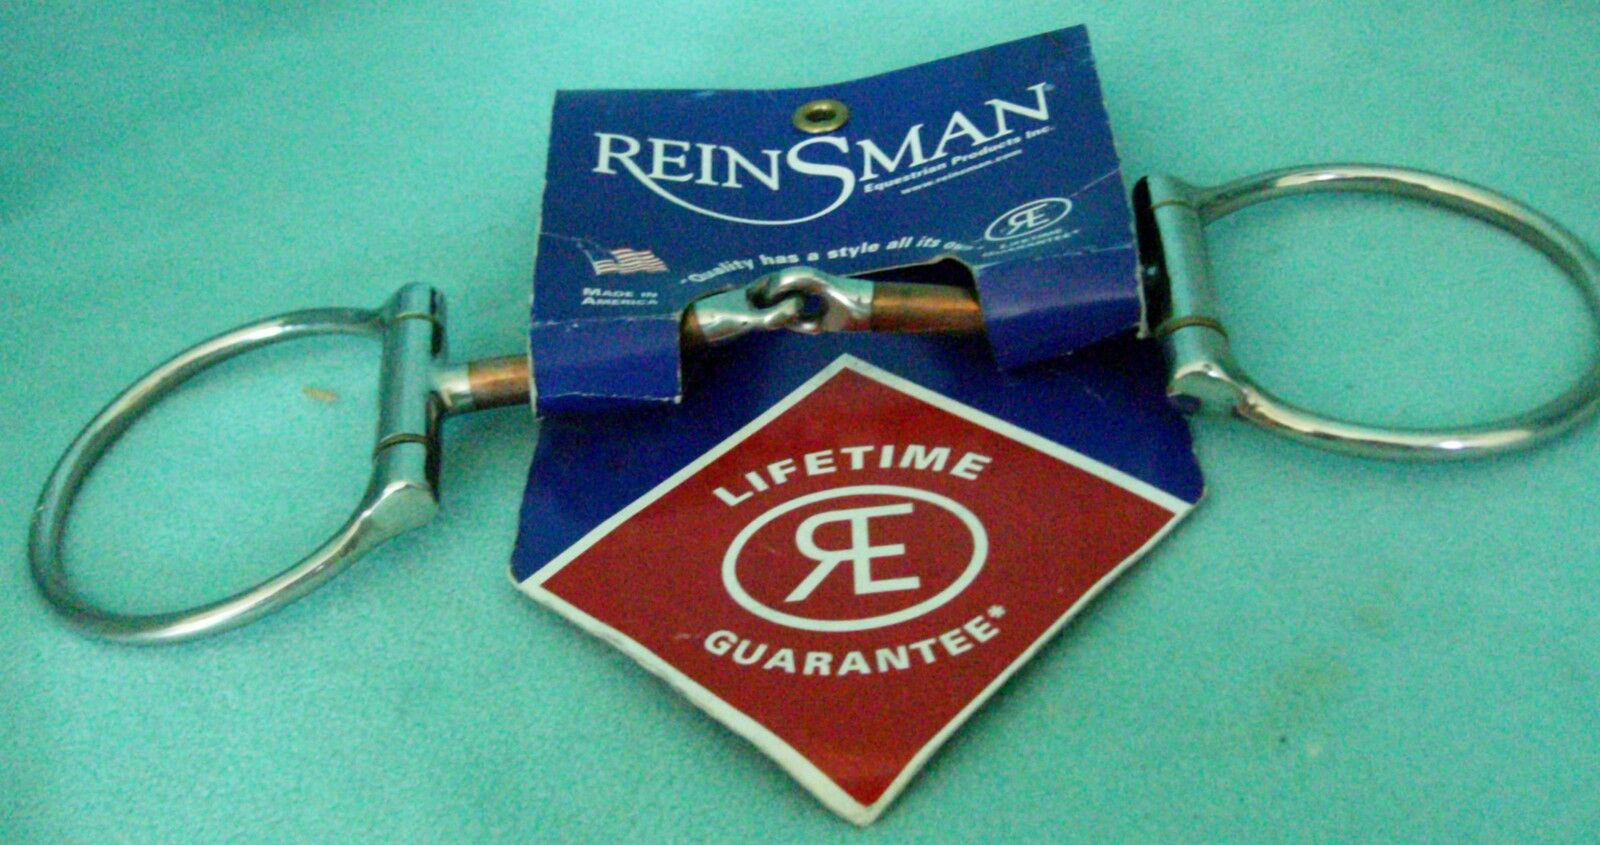 New Reinsman Off Set Dee Copper Snaffle  Horse Bit   TS225  wholesale price and reliable quality